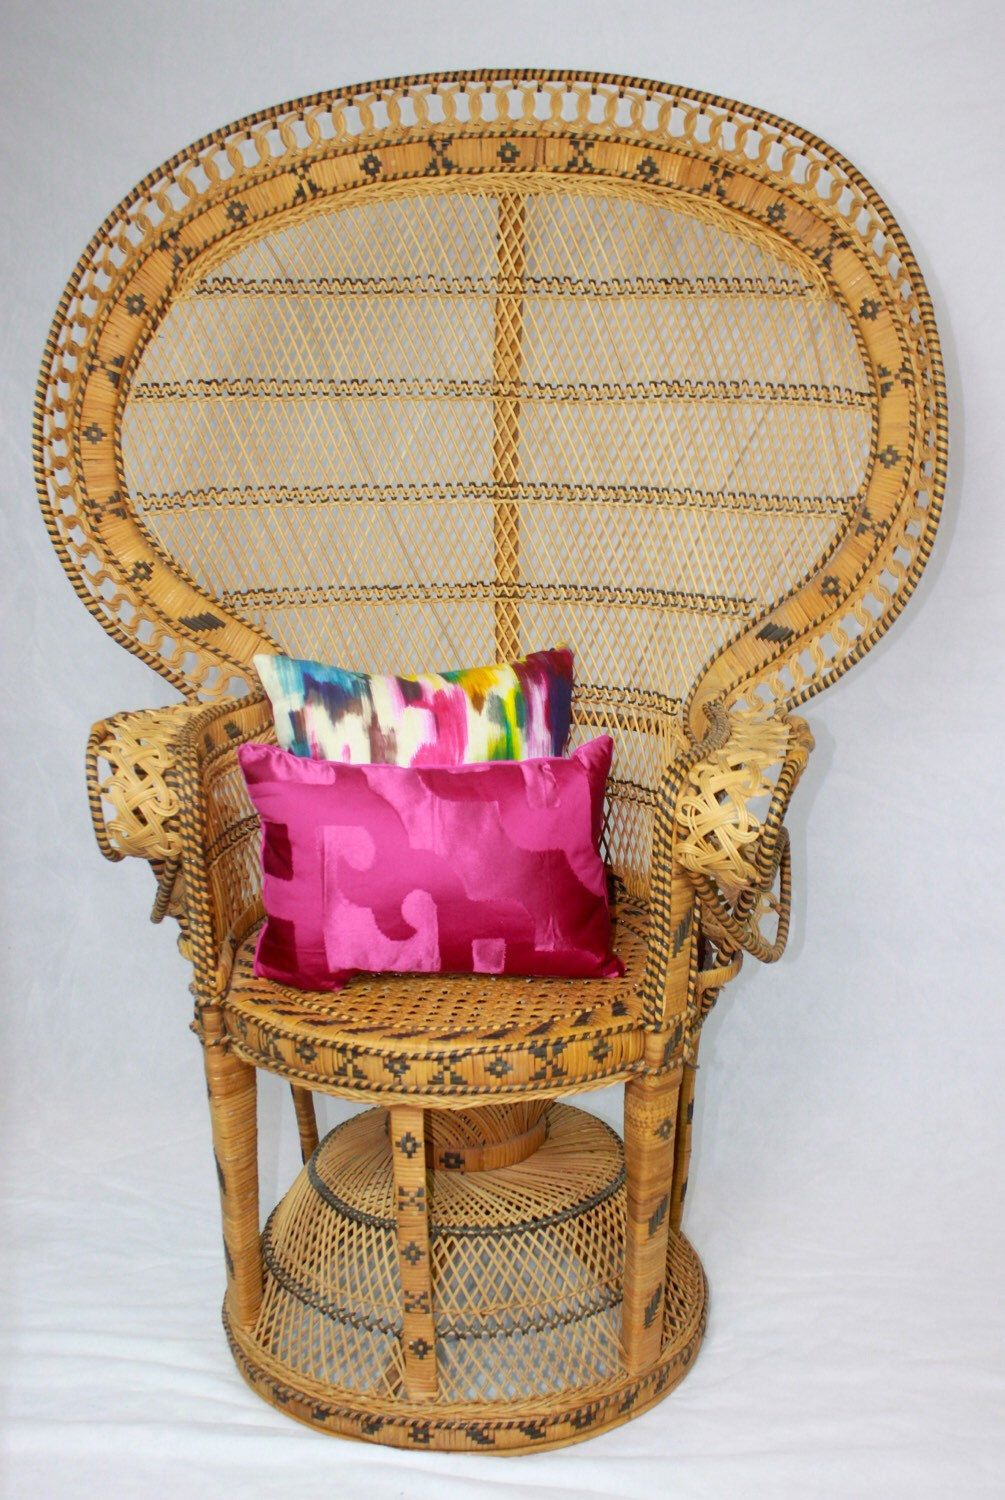 Large vintage rattan peacock chair jungalow style boho